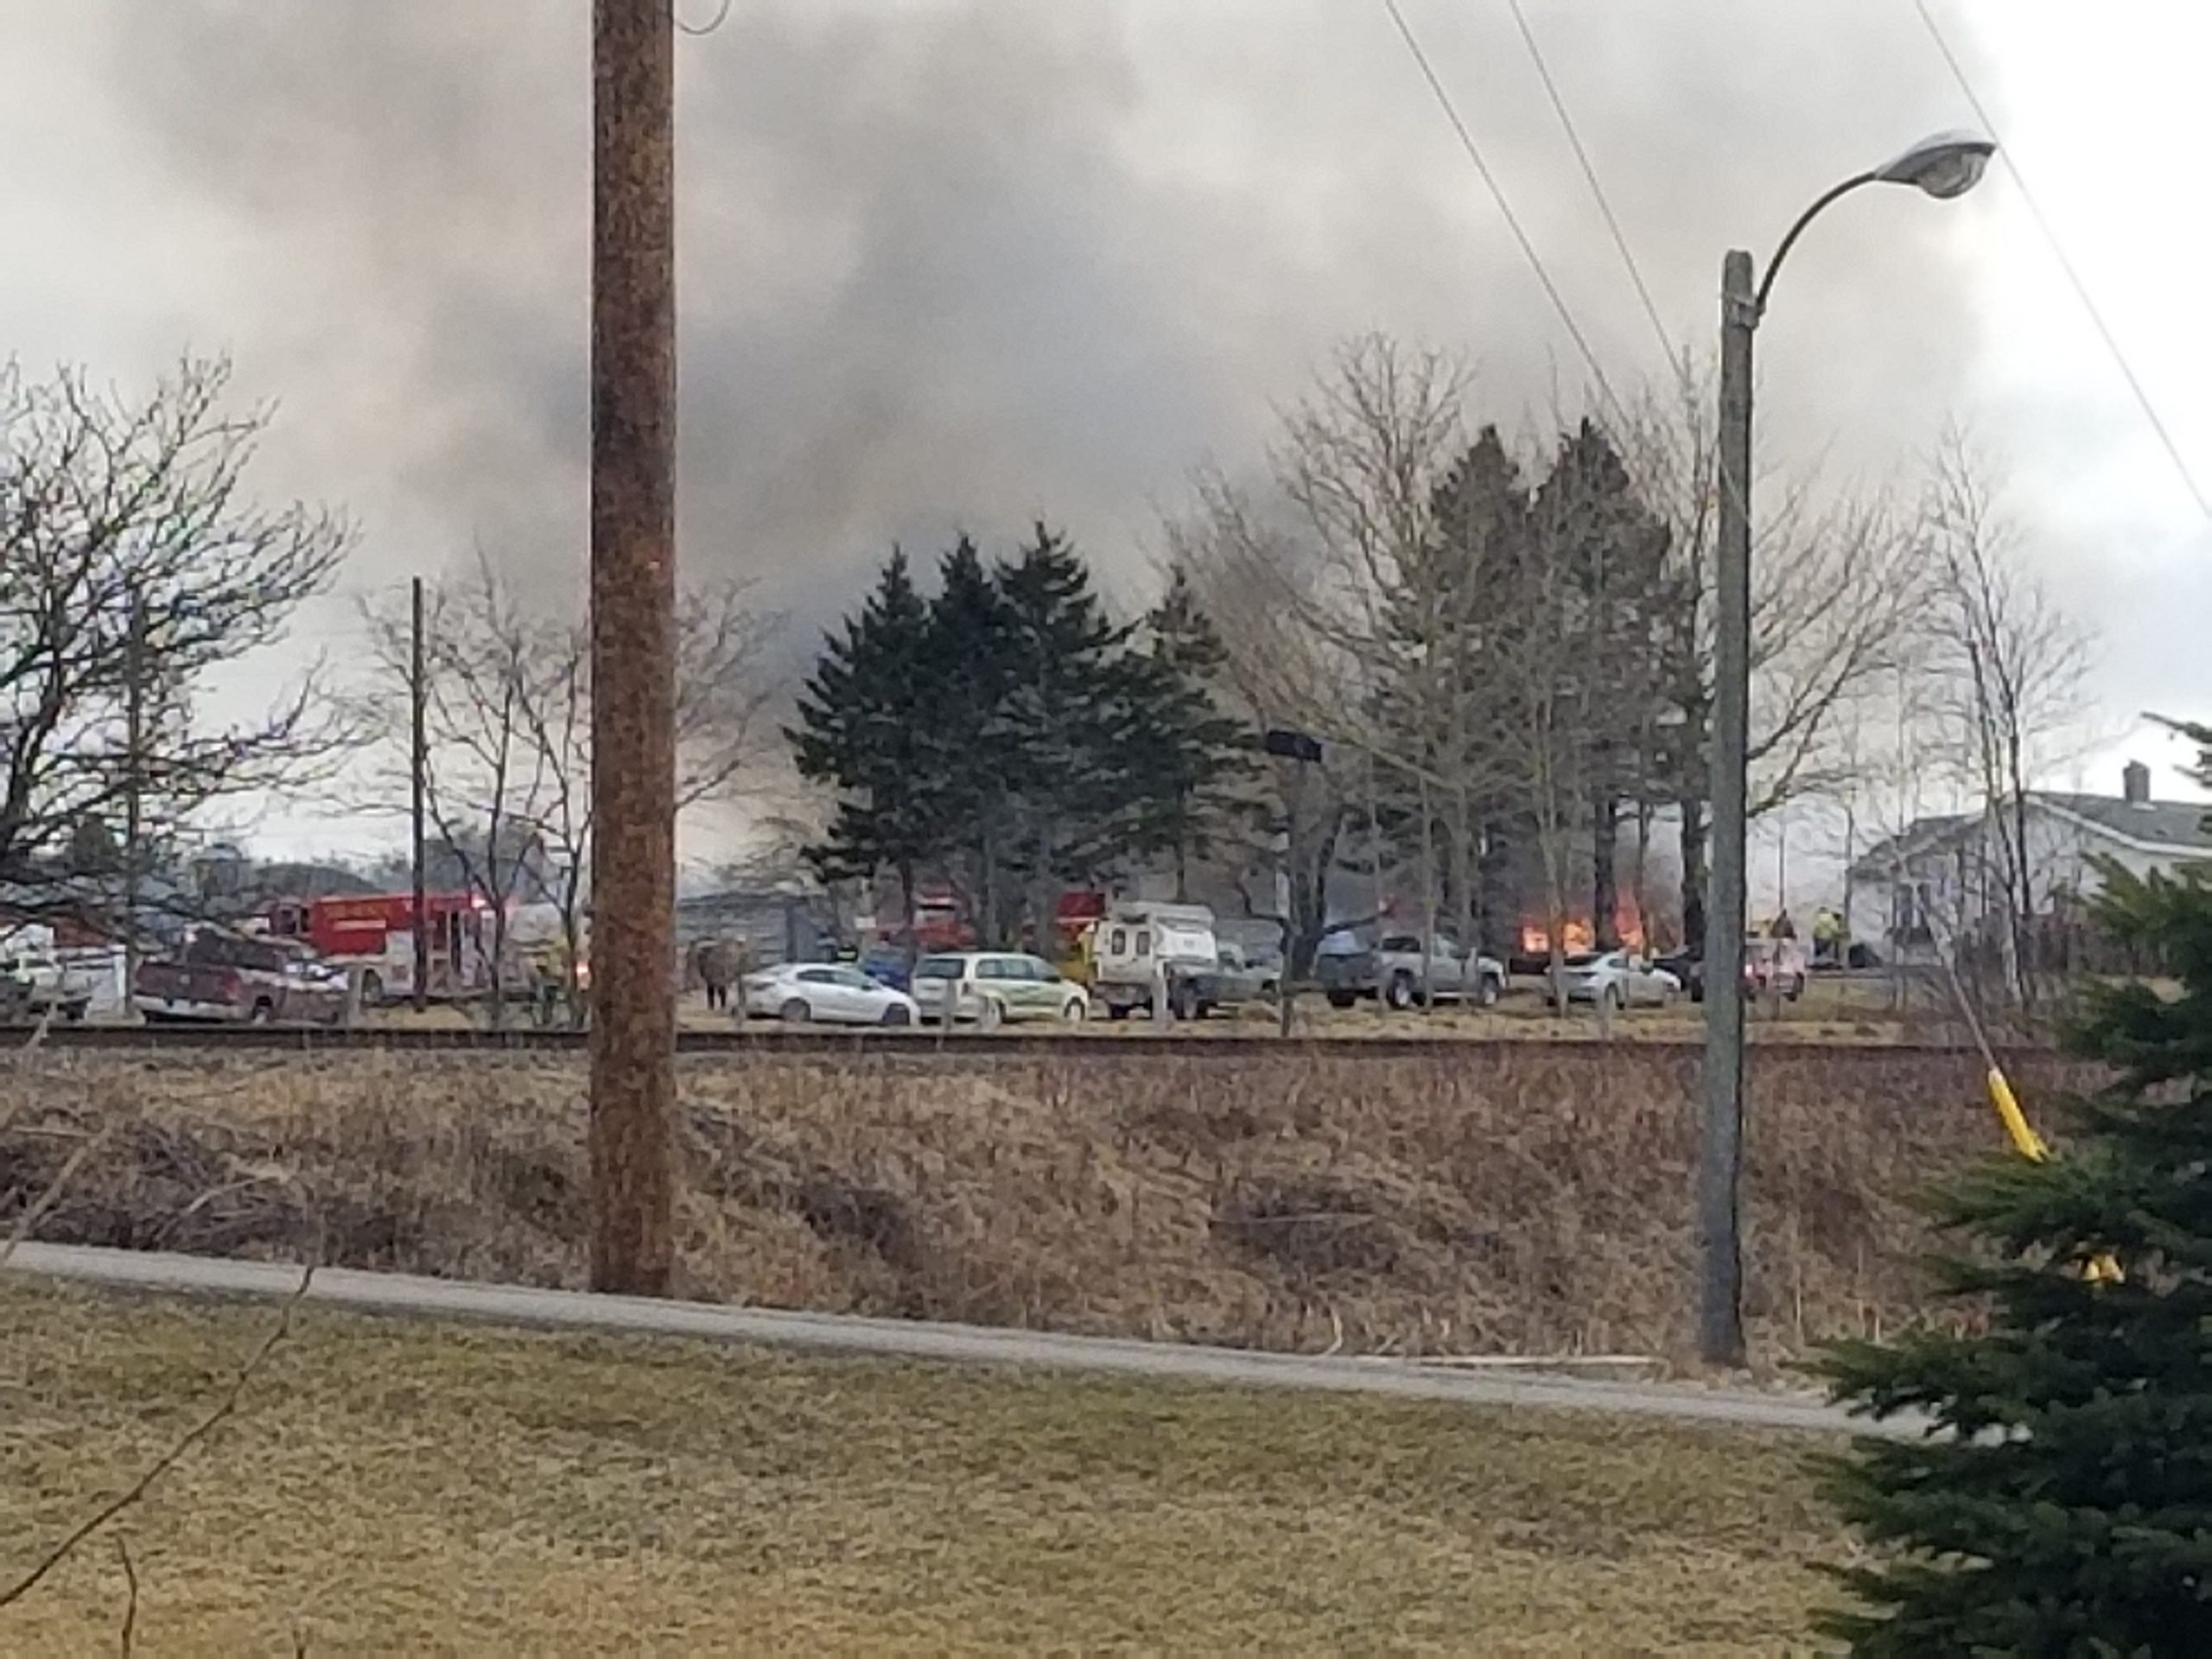 Firefighters on scene of structure fire in Antigonish Co.